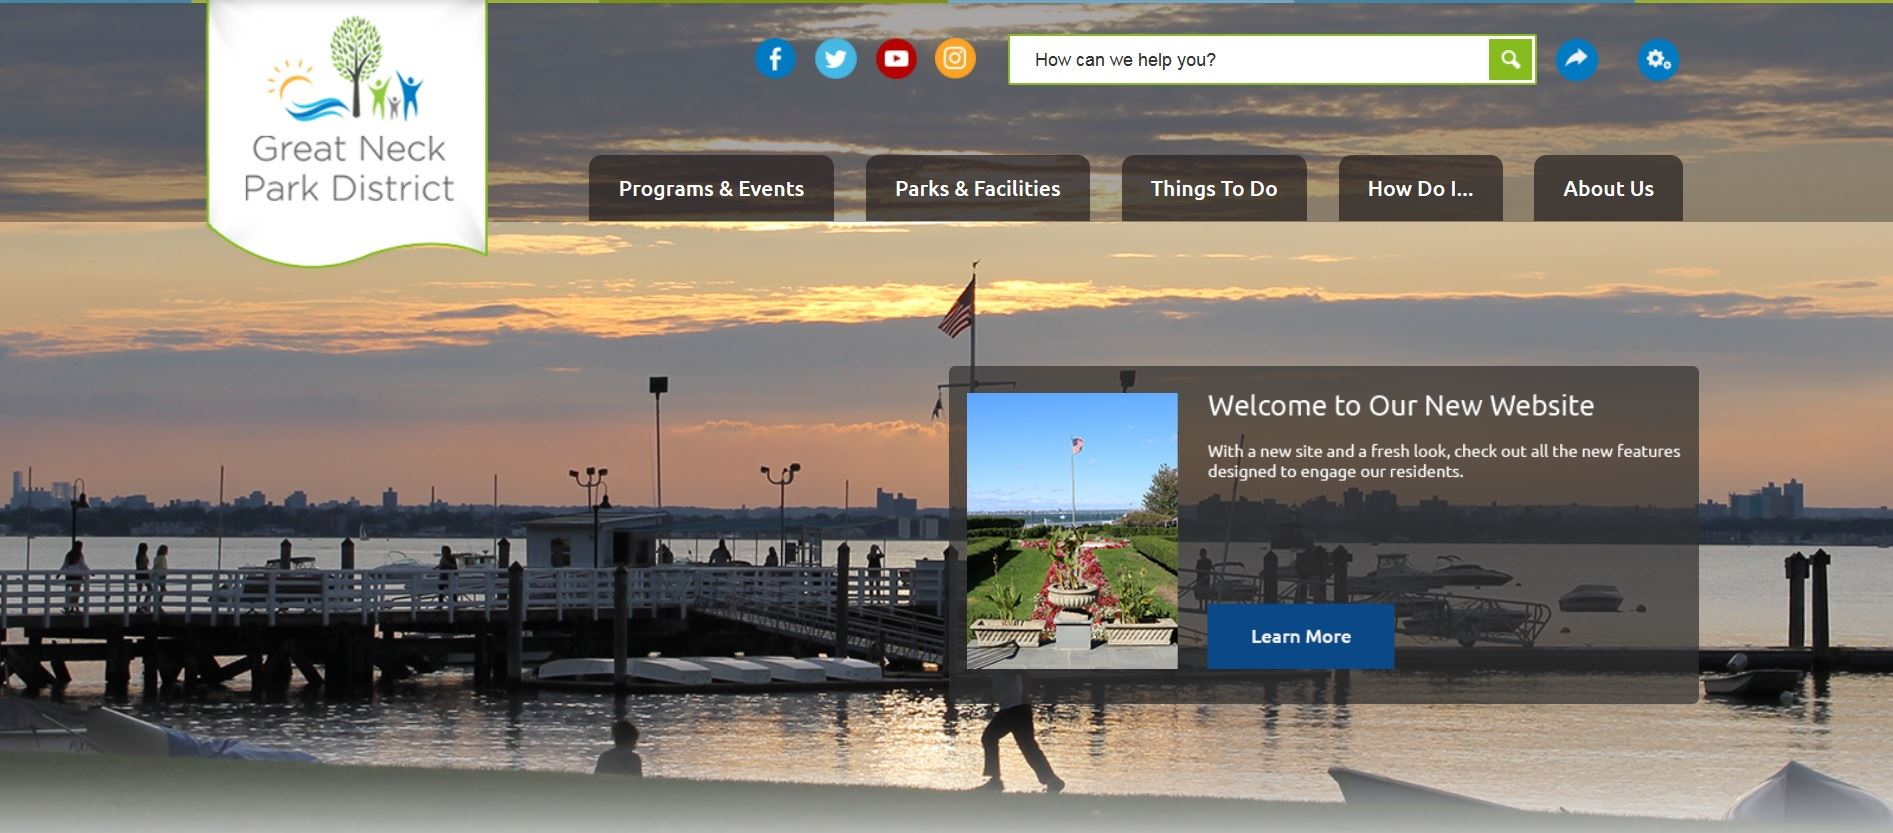 Great Neck Park District launches new website